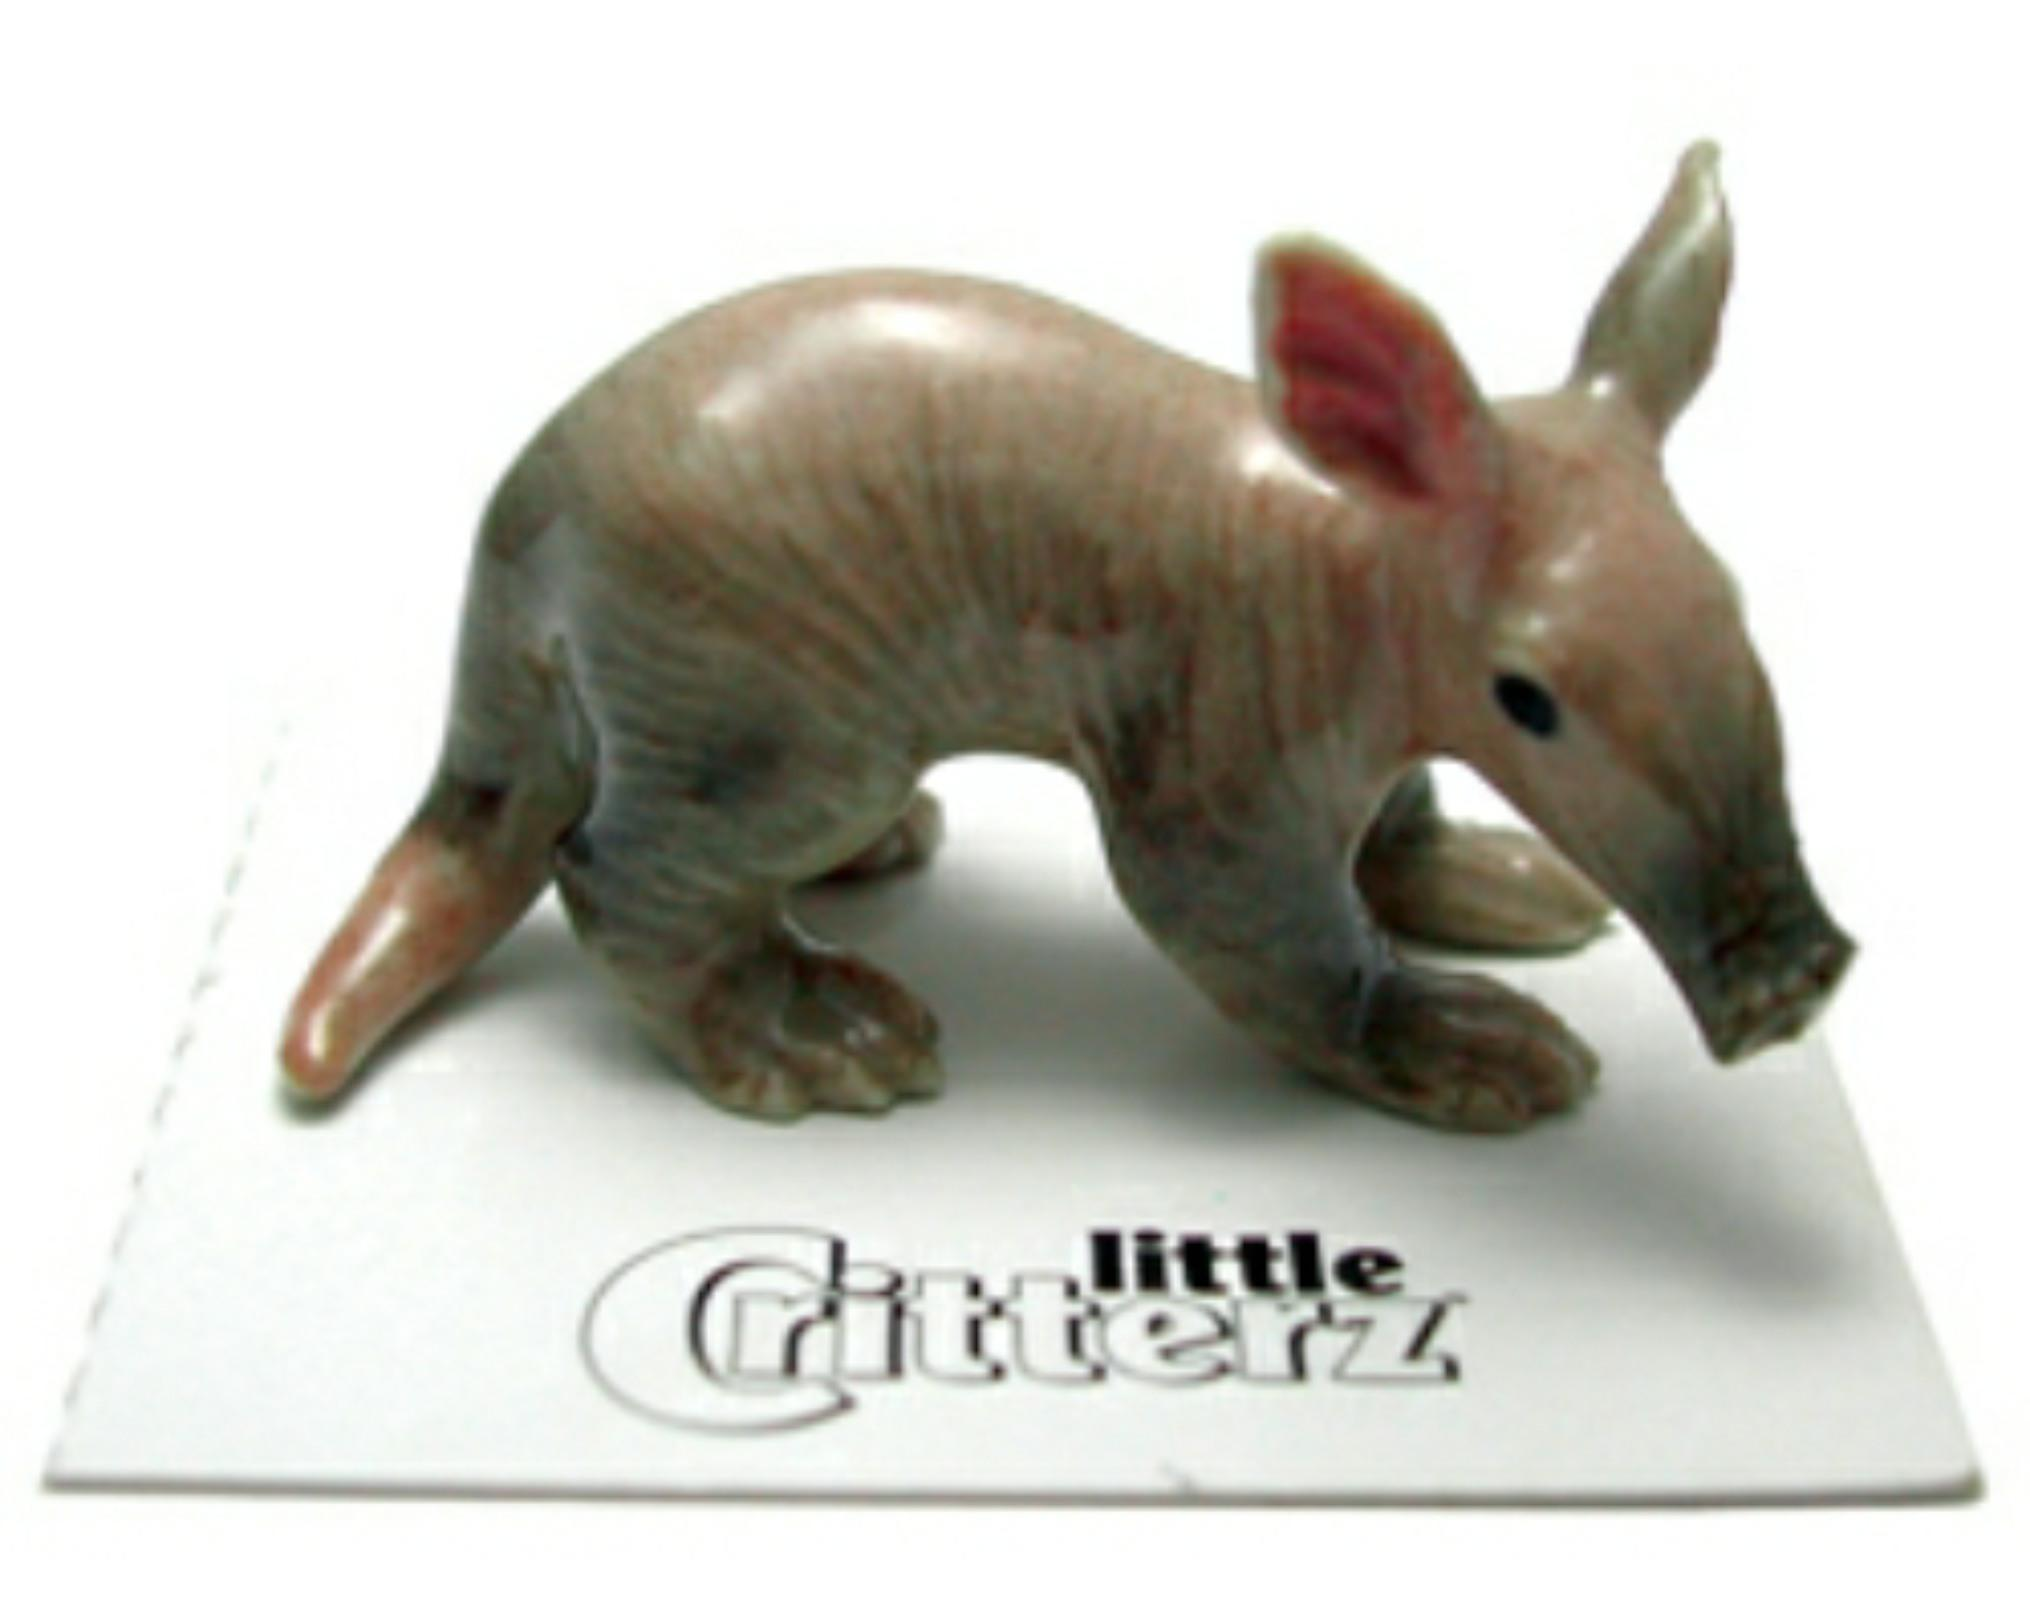 Little Critterz Miniature Porcelain Animal Aardvaark Baby